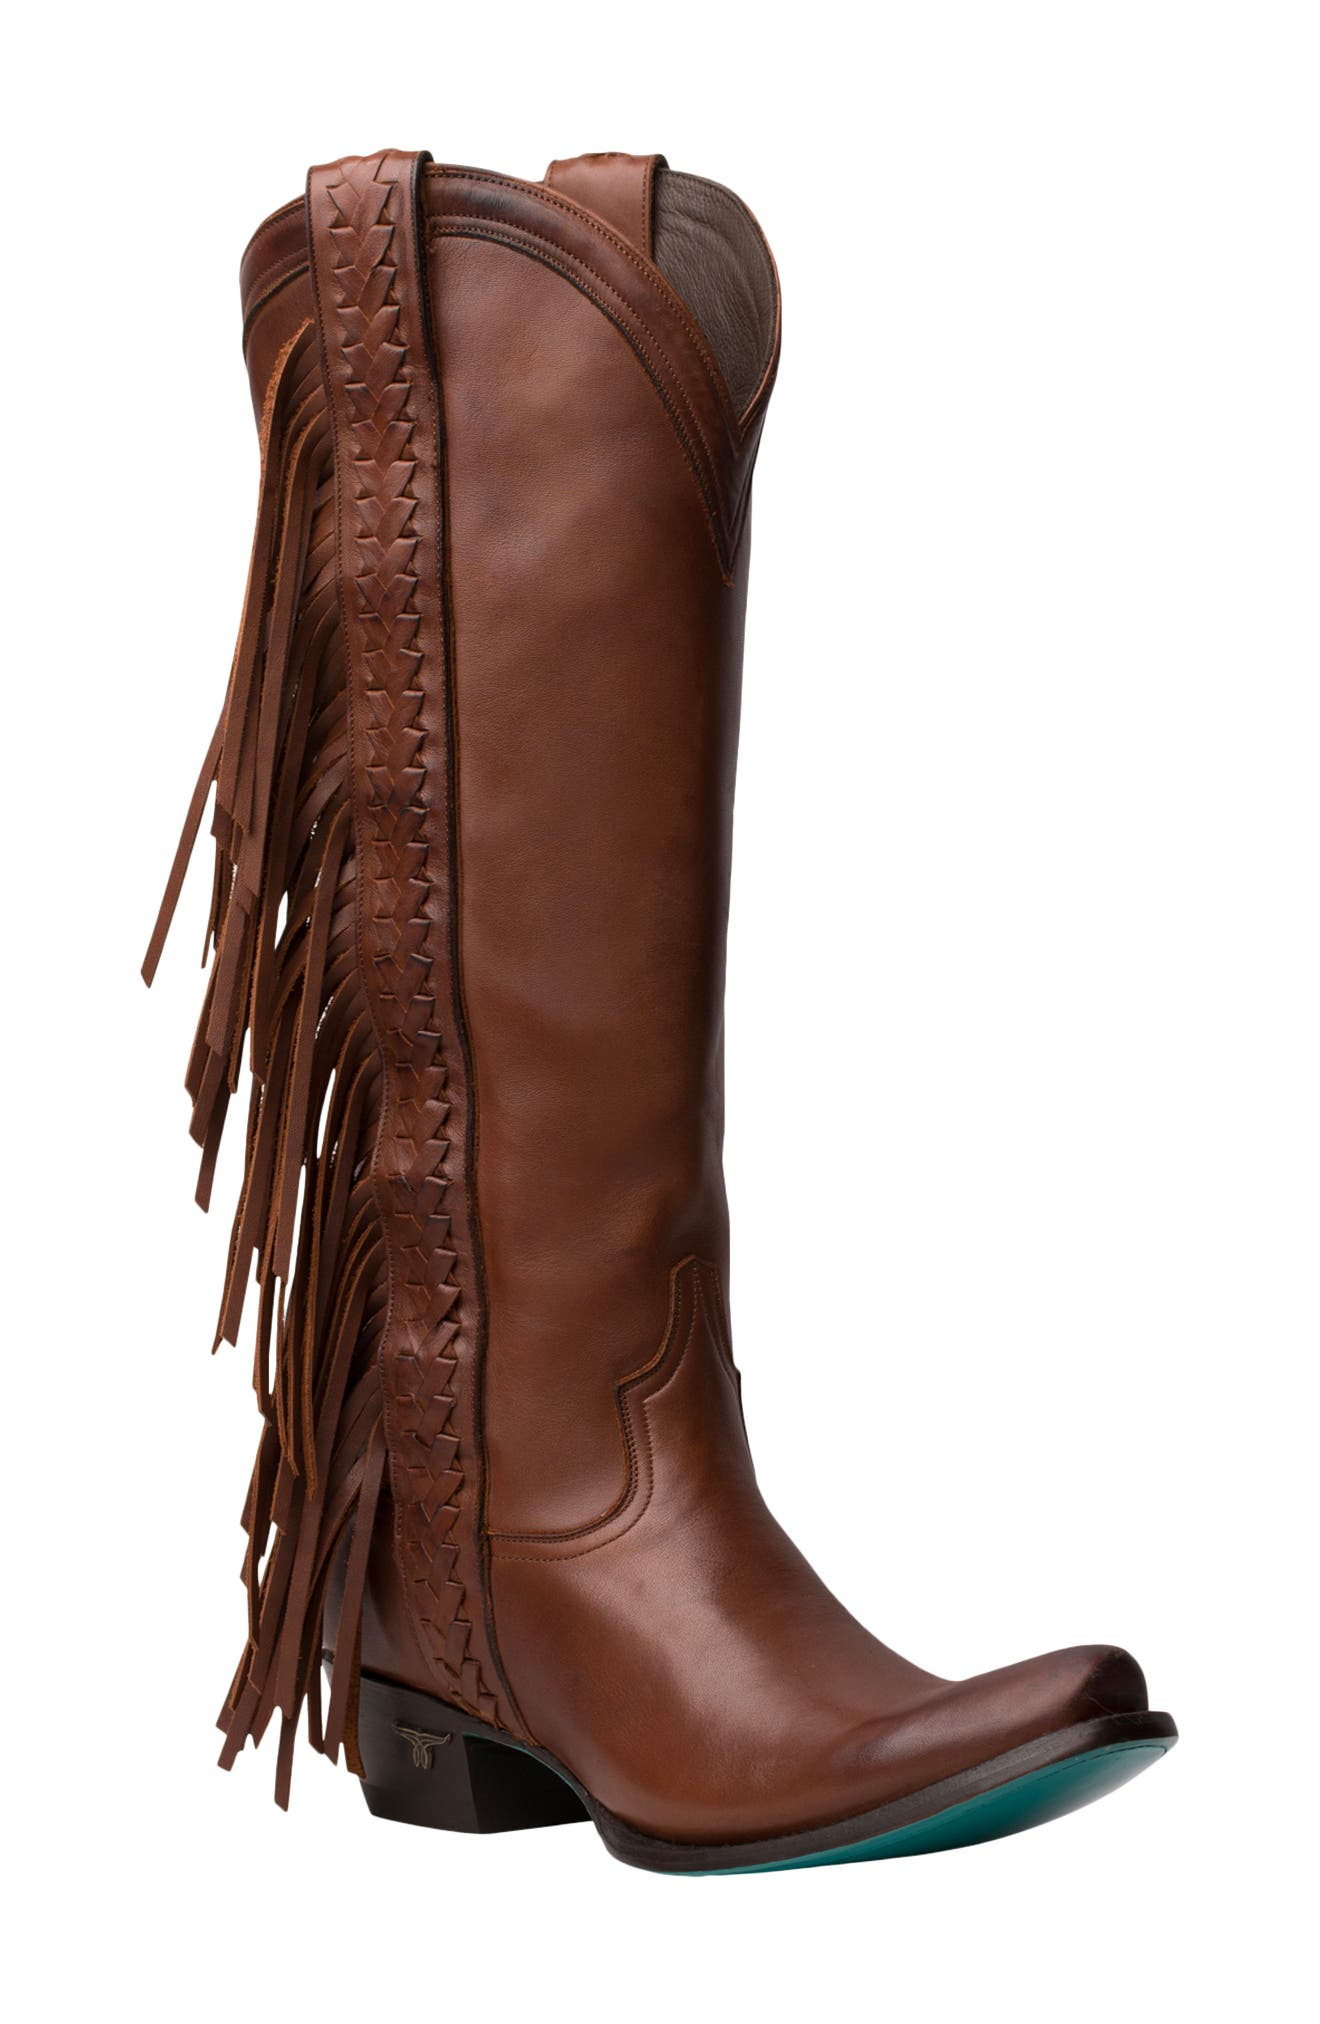 Lane\\\'s trademark fringe details the outside of this knee-high Western boot-but only when you\\\'re in the mood, thanks to a clever, removable design. A flash of burnished turquoise comes with every step in this classic-made-contemporary boot. Style Name: Lane Boots Katori Fringe Shaft Knee High Western Boot (Women). Style Number: 6098918. Available in stores.